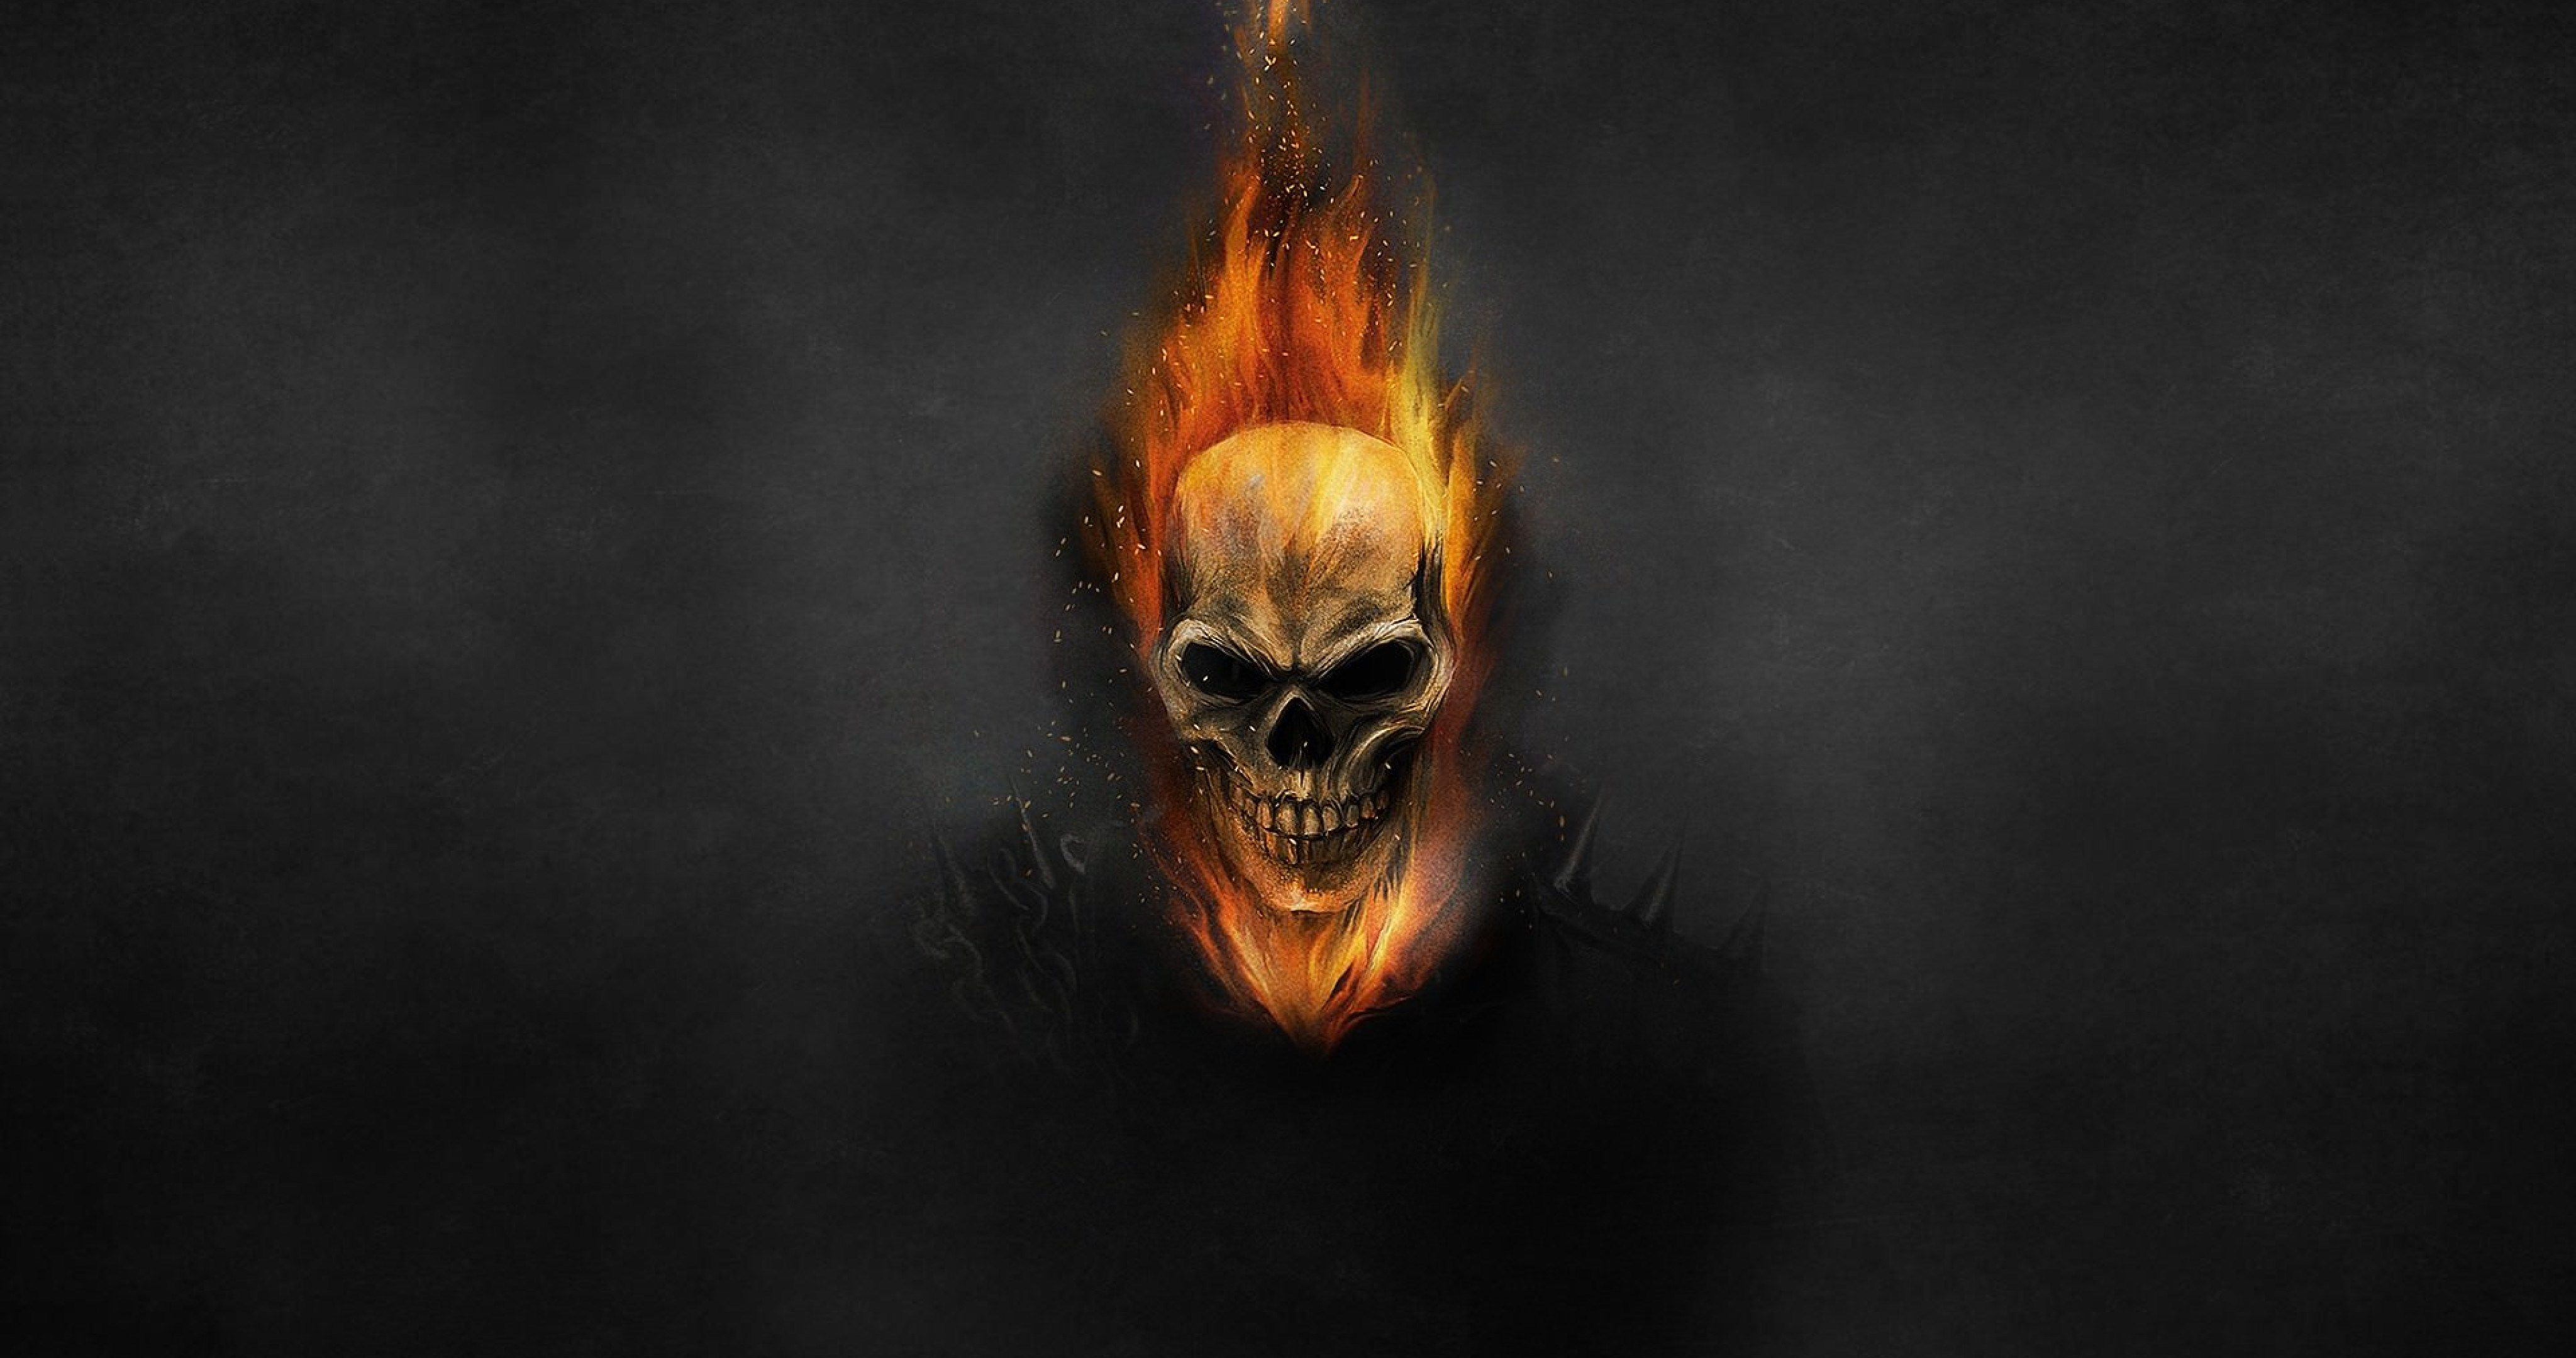 Ghost Rider Fanart Wallpaper ID:4830